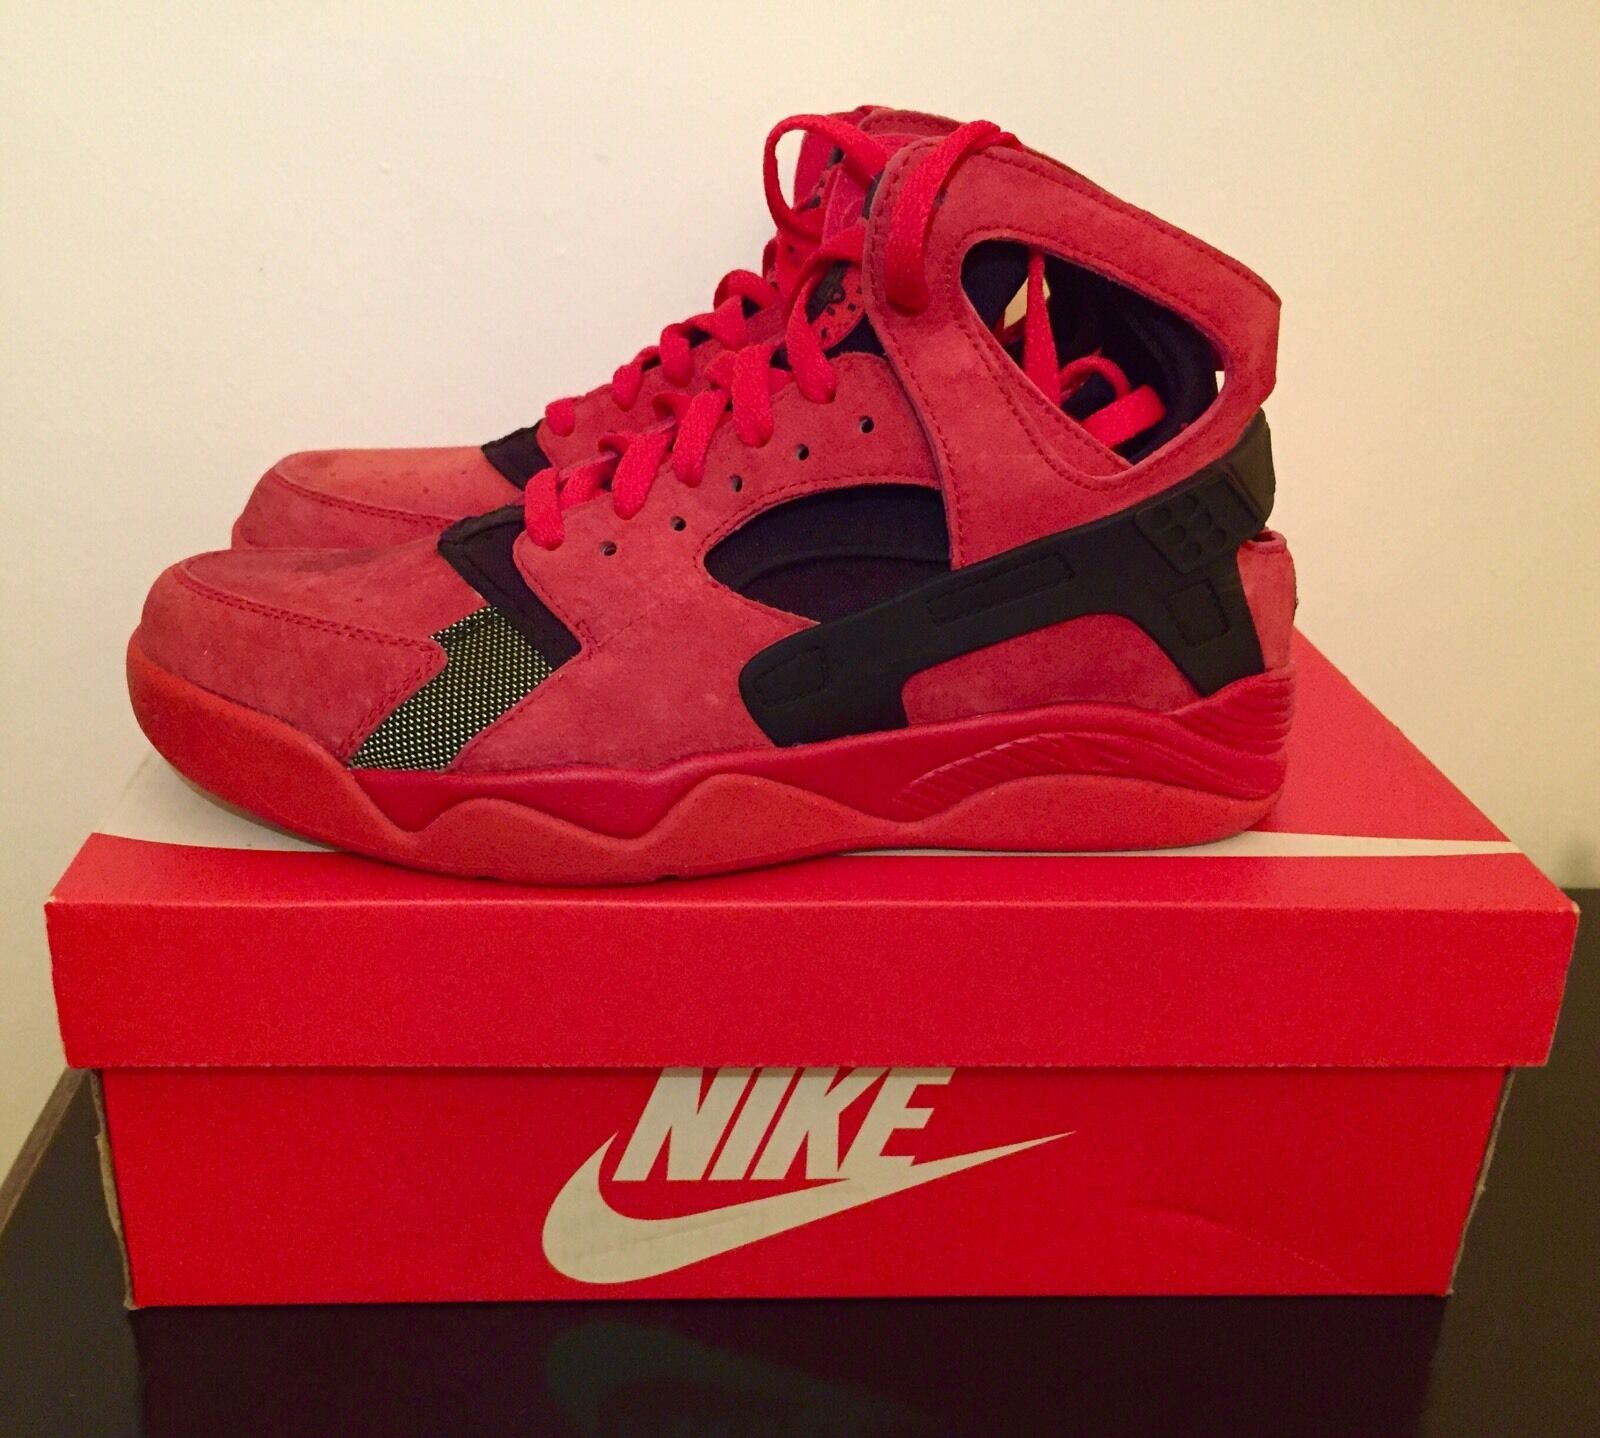 nike Air Flight Huarache 9 EU in Talla US 9 Huarache EU Huarache 42.5 3b2806 0effd5